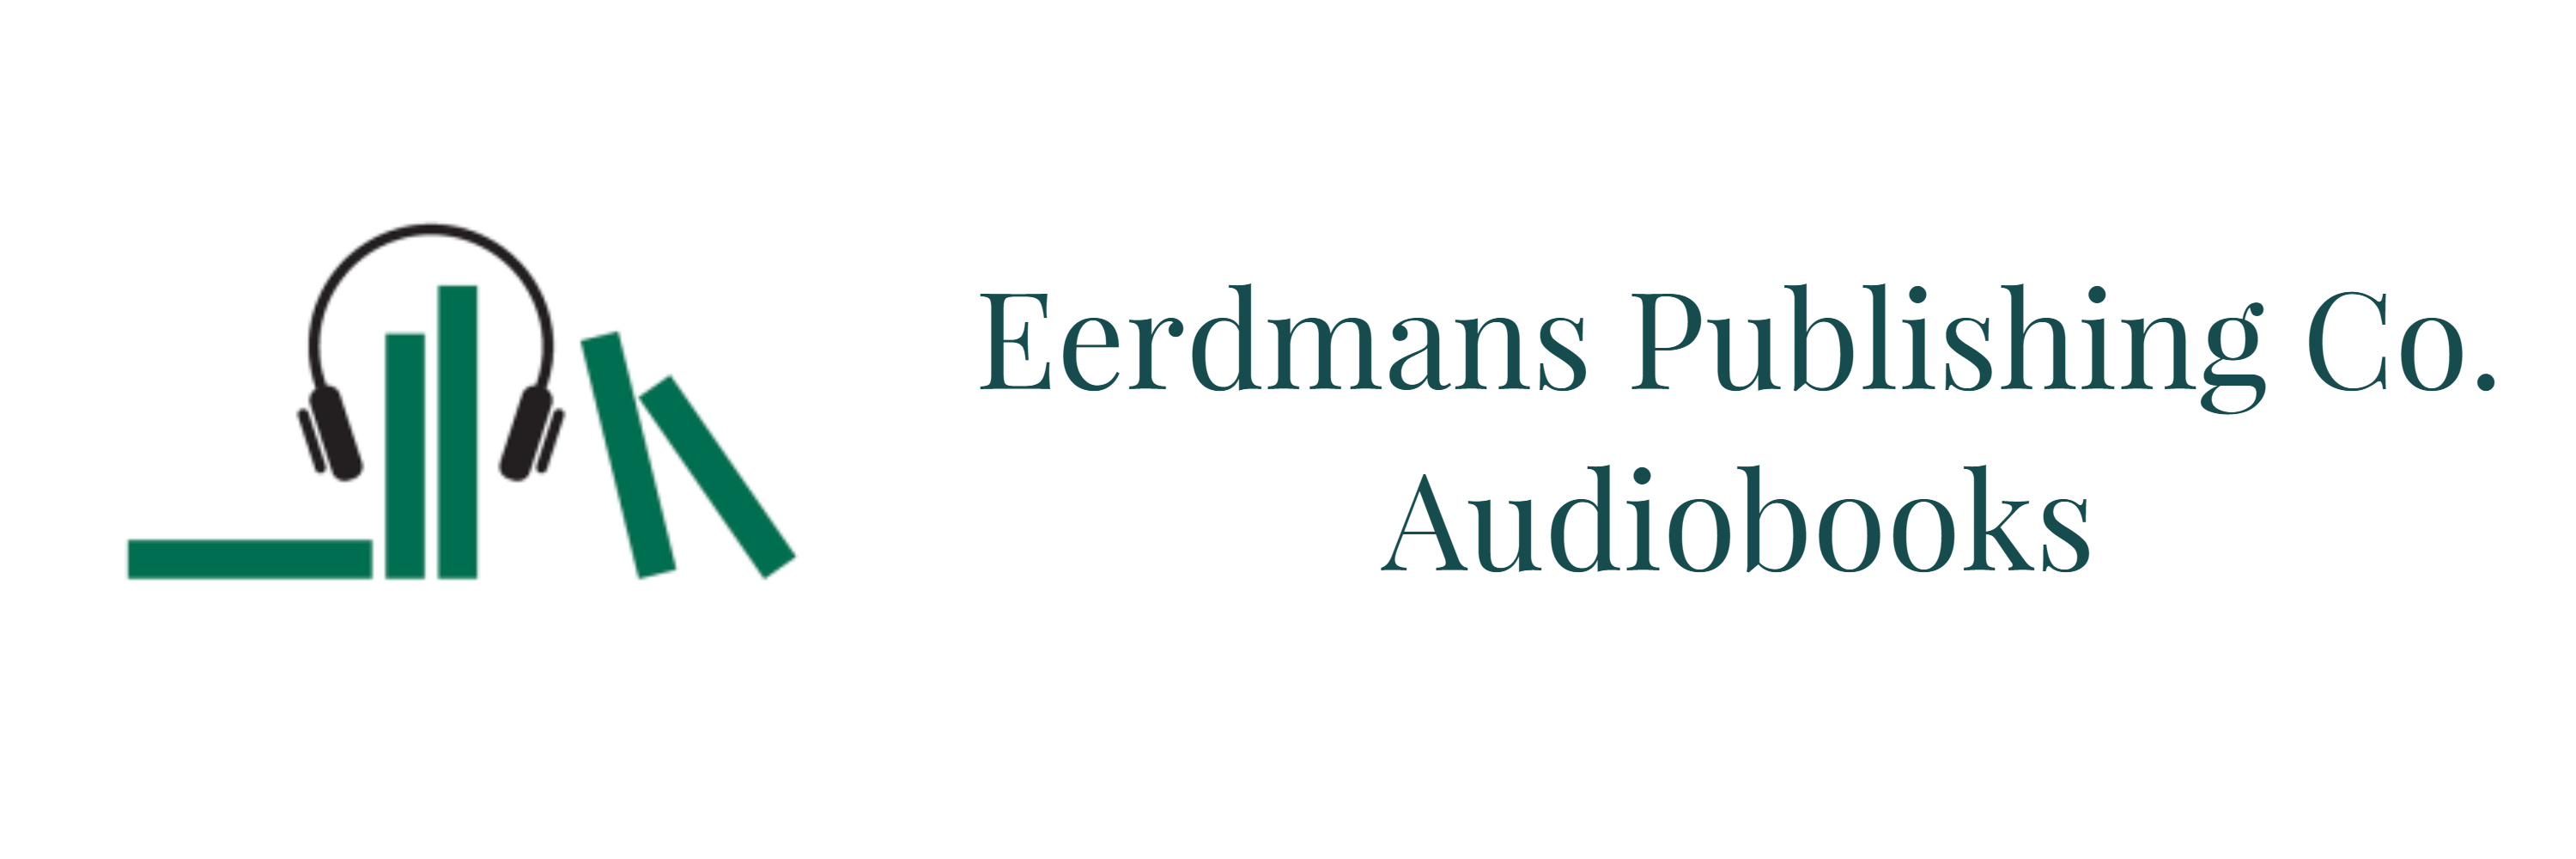 Eerdmans Publishing Co. Audiobooks